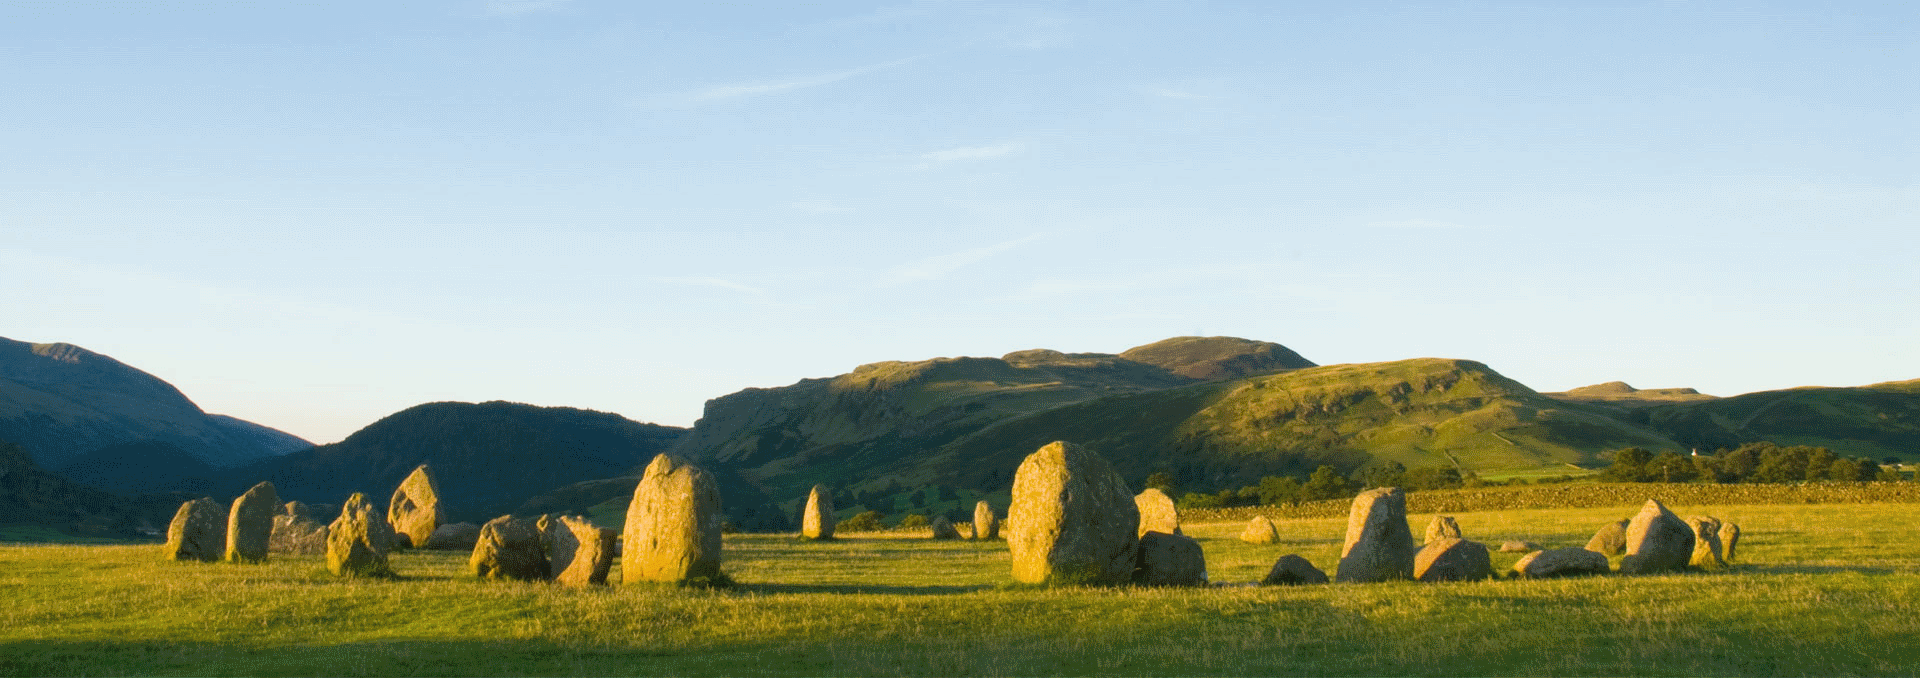 Castlerigg Stone Circle Allerdale Lake District